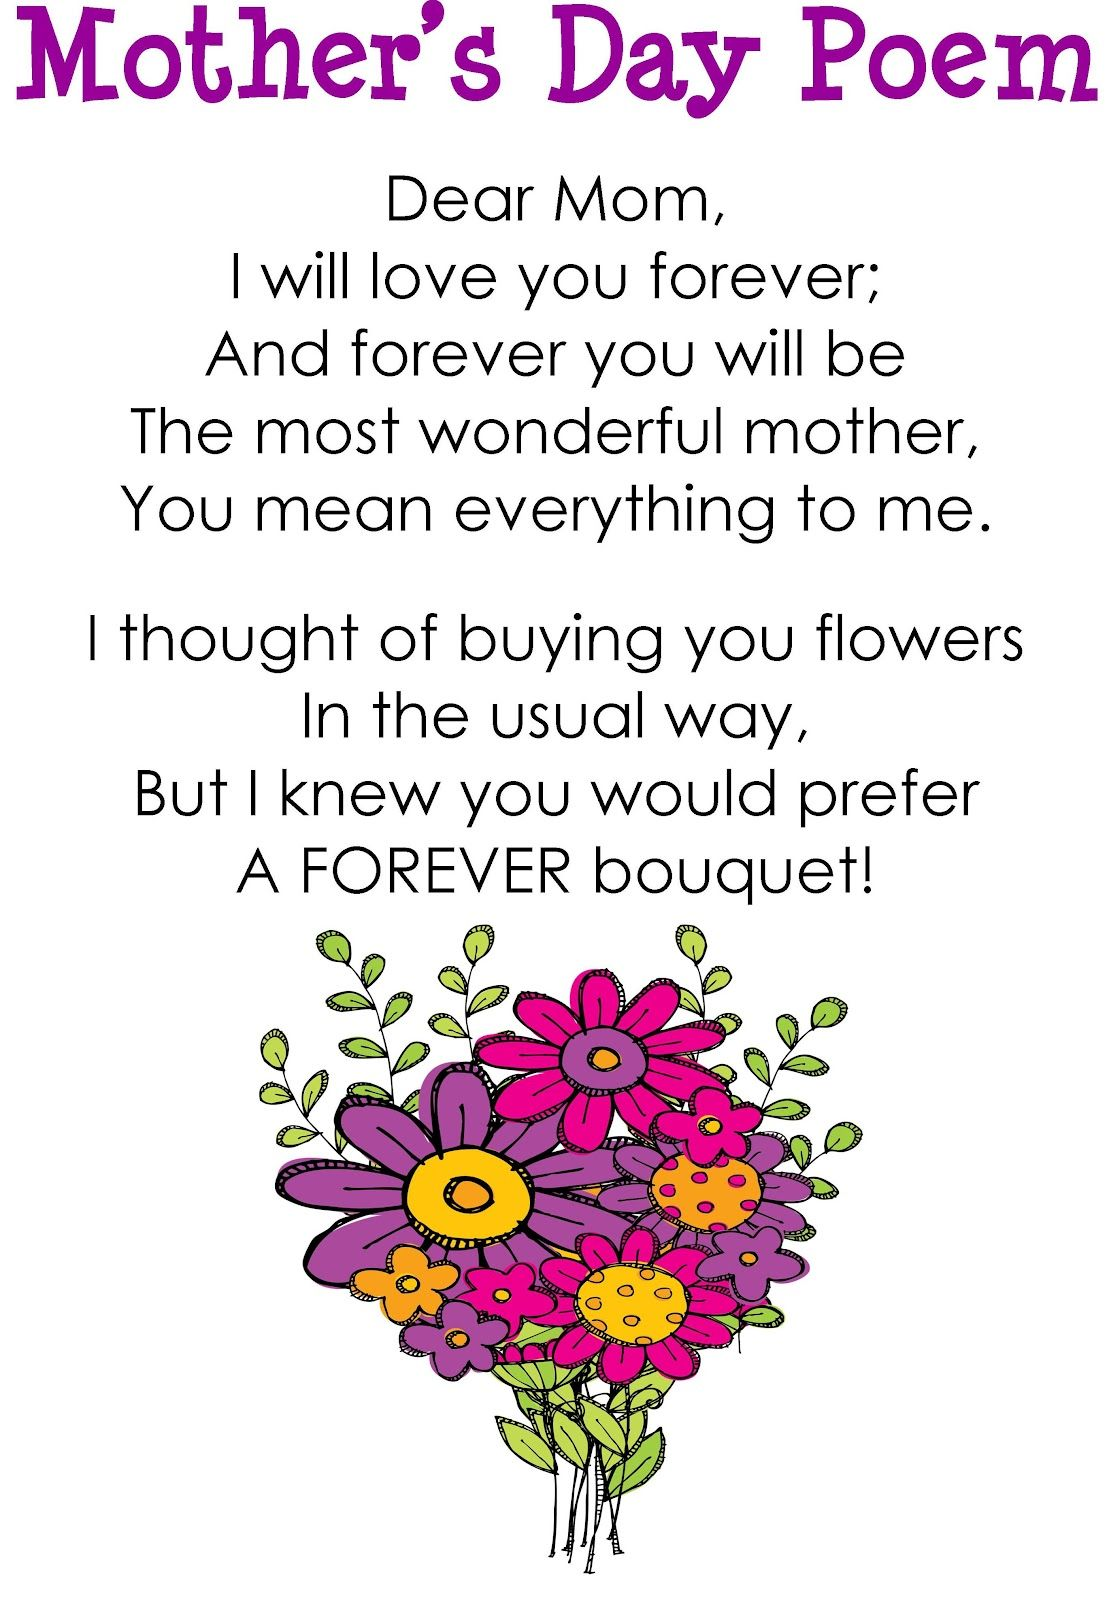 Mothers Day Poem Picture Image